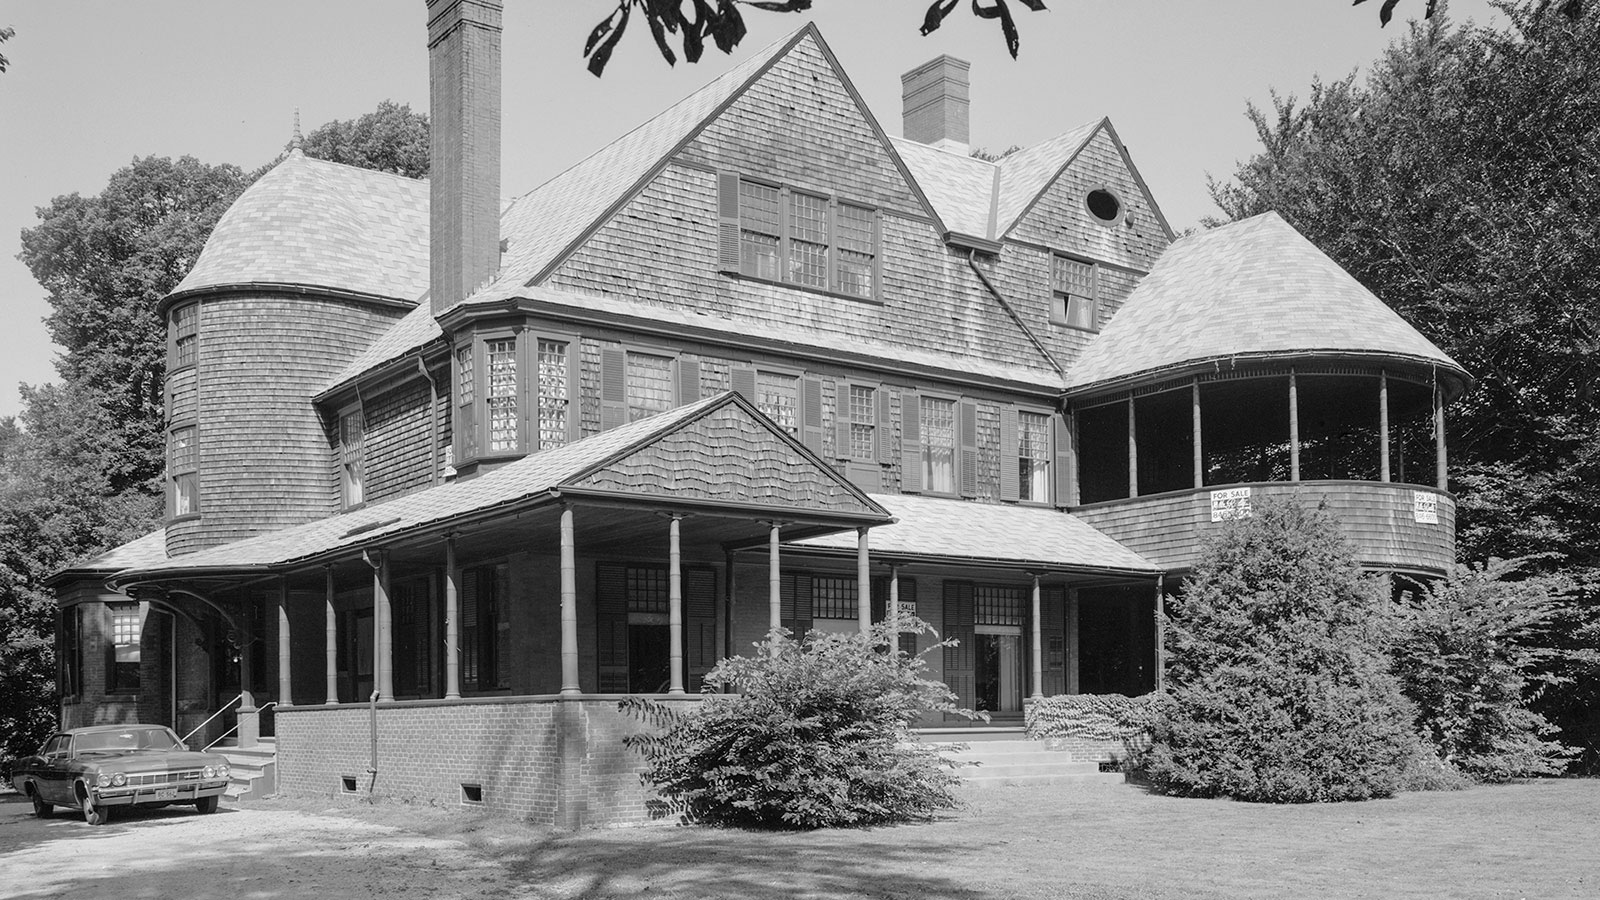 McKim, Mead U0026 Whiteu0027s Design For The Isaac Bell House Was Inspired By  Colonial, Japanese, And European Sources. Photo Credit: Daniel Case Via  Wikimedia ...